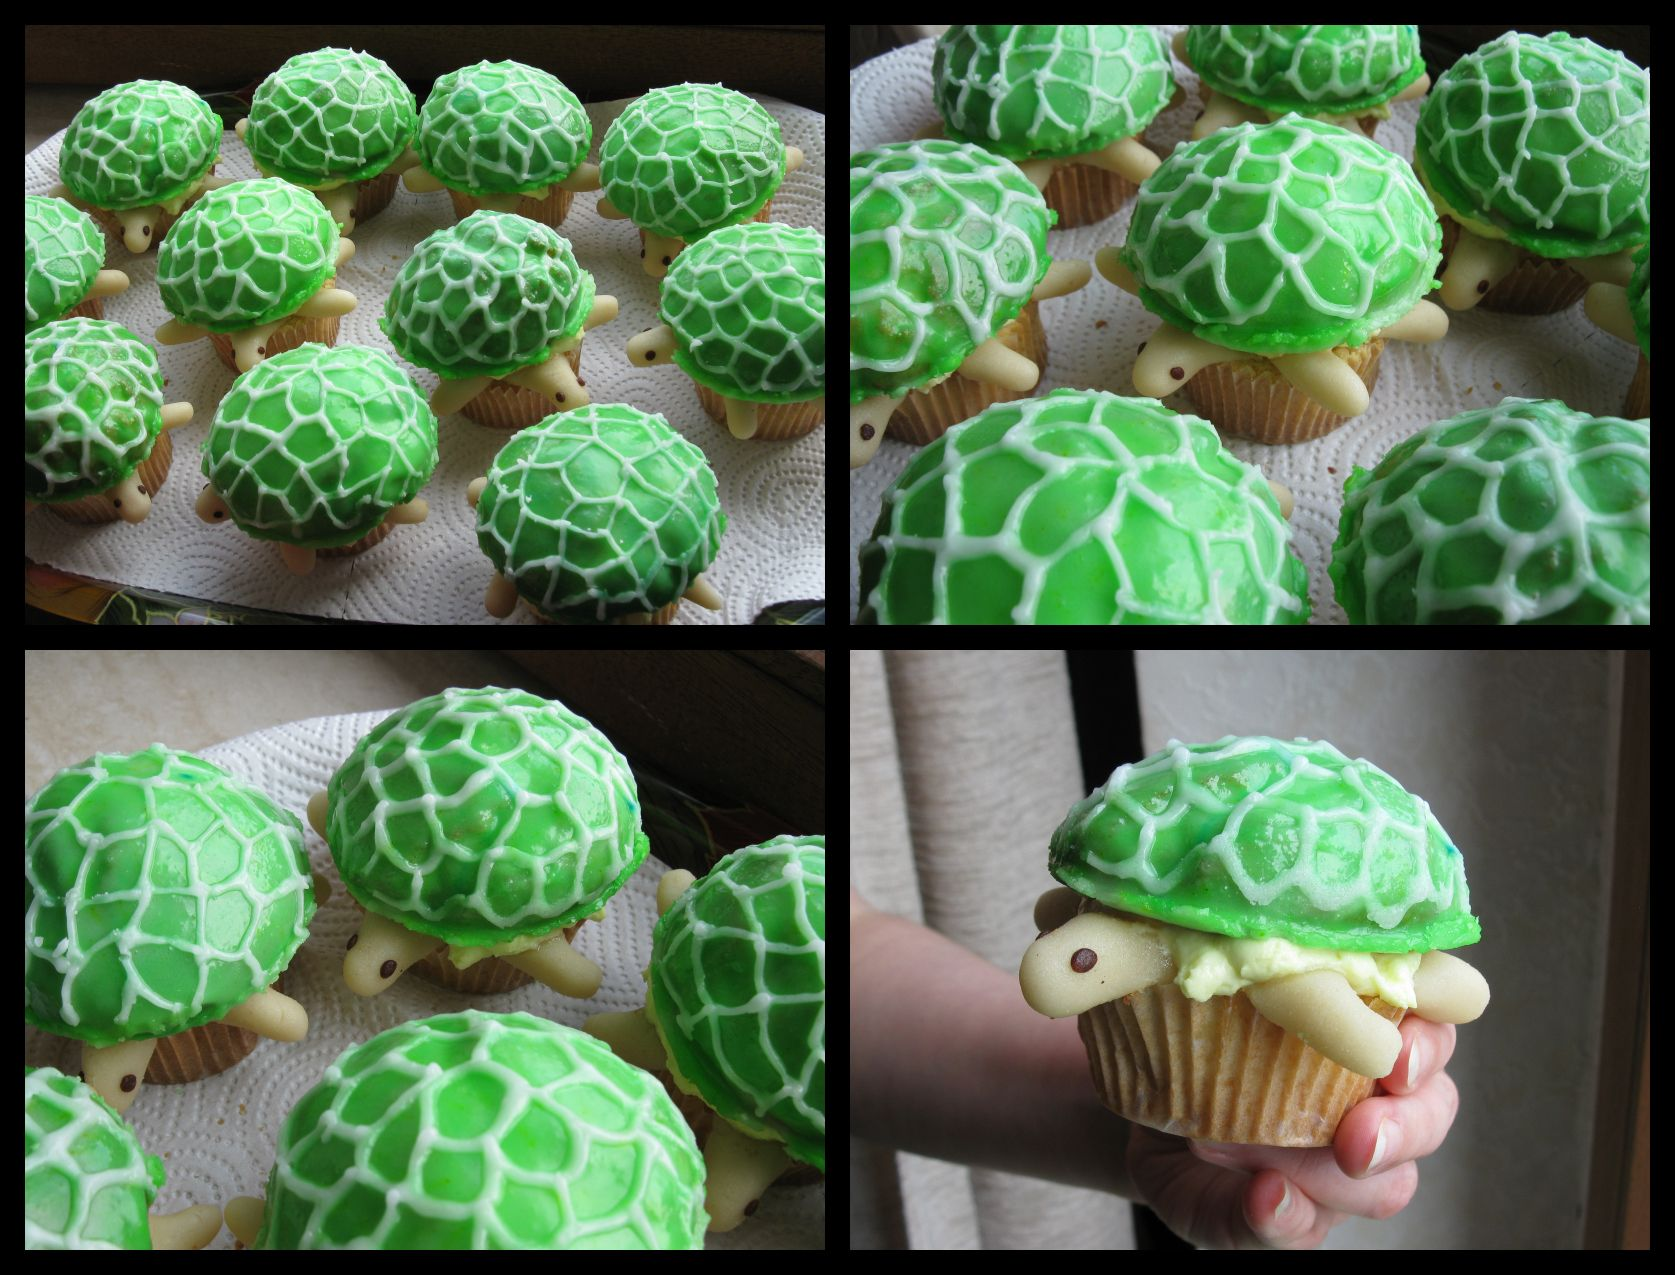 Some turtleshaped cupcakes I made for a friends birthday Turtle